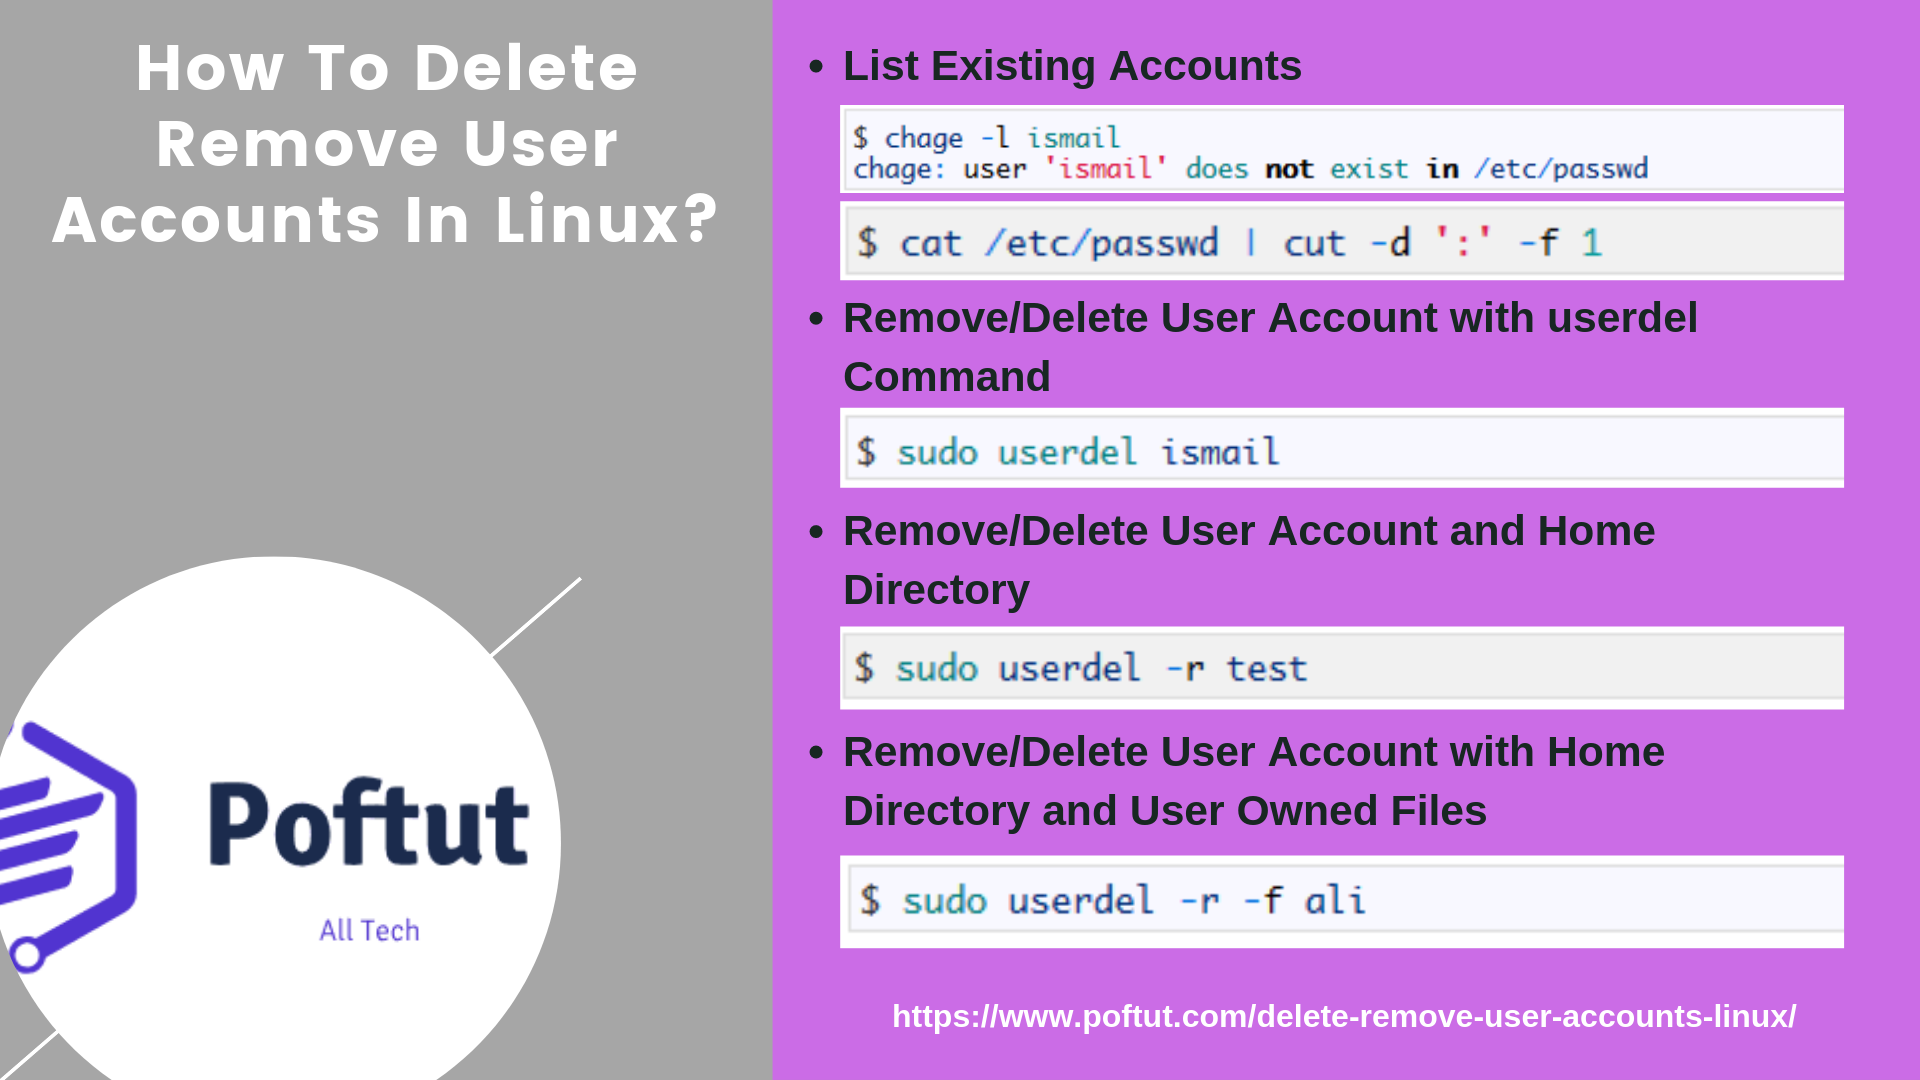 How To Delete Remove User Accounts In Linux? Infografic